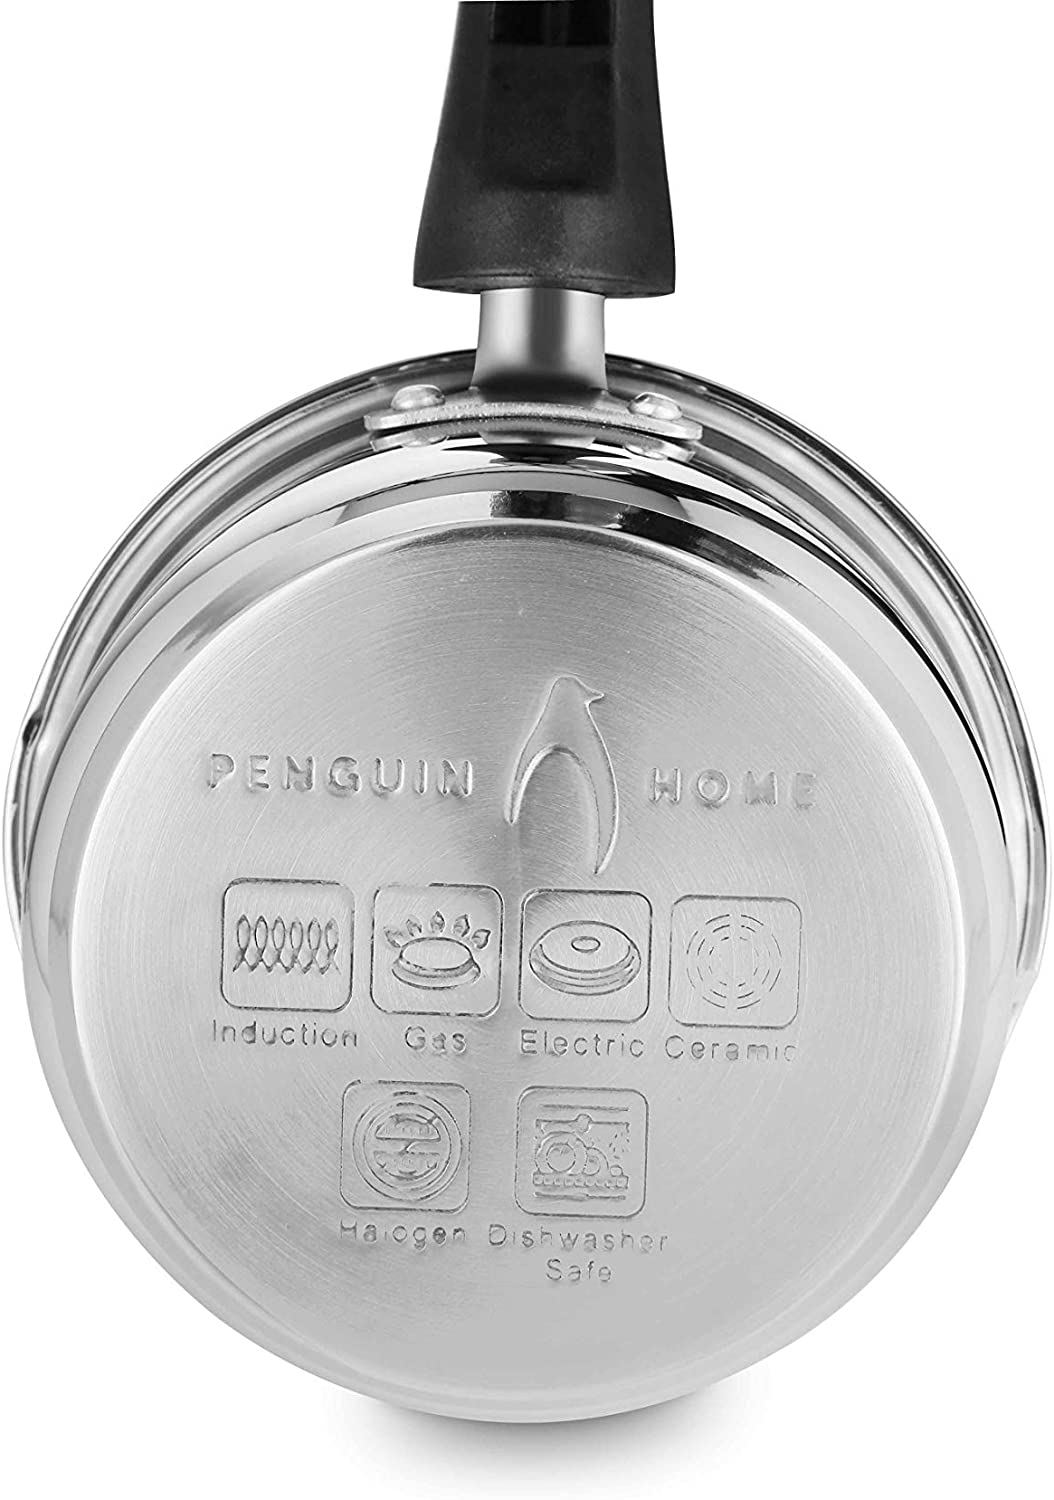 14 cm Stainless Steel Penguin Home Professional Induction-Safe Milk Pan 1 L